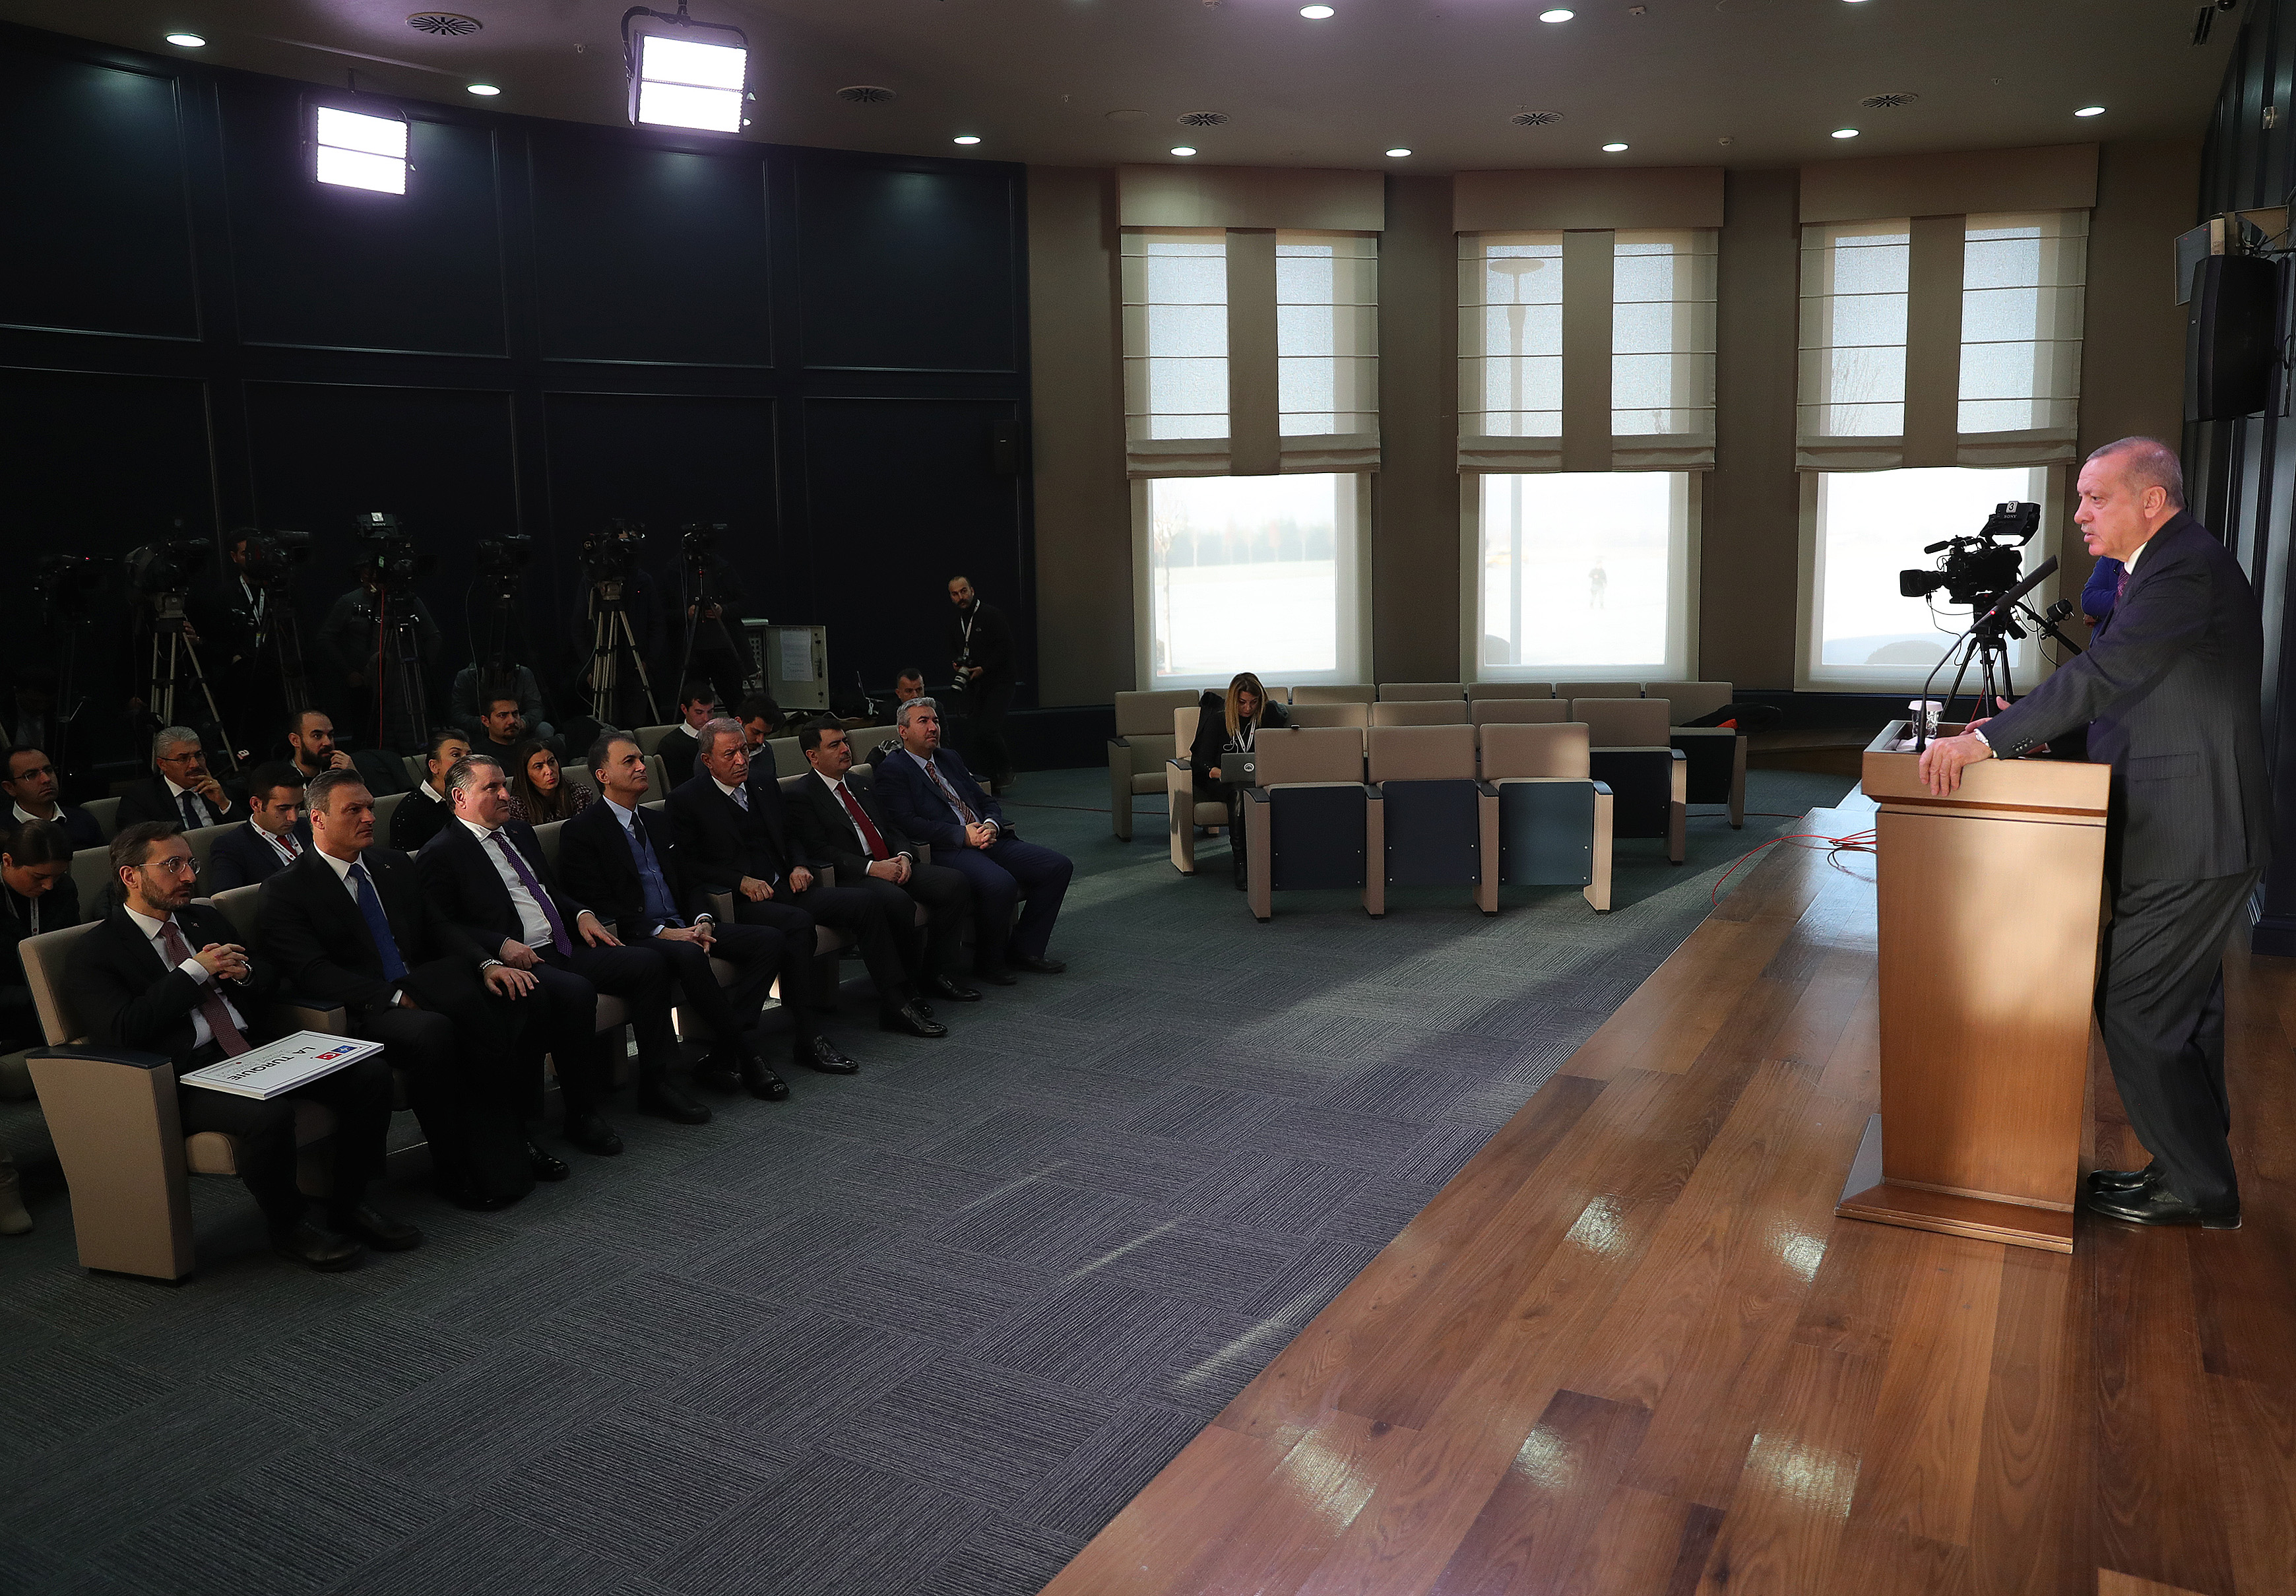 President Erdoğan addresses media persons before departing to London for a NATO summit